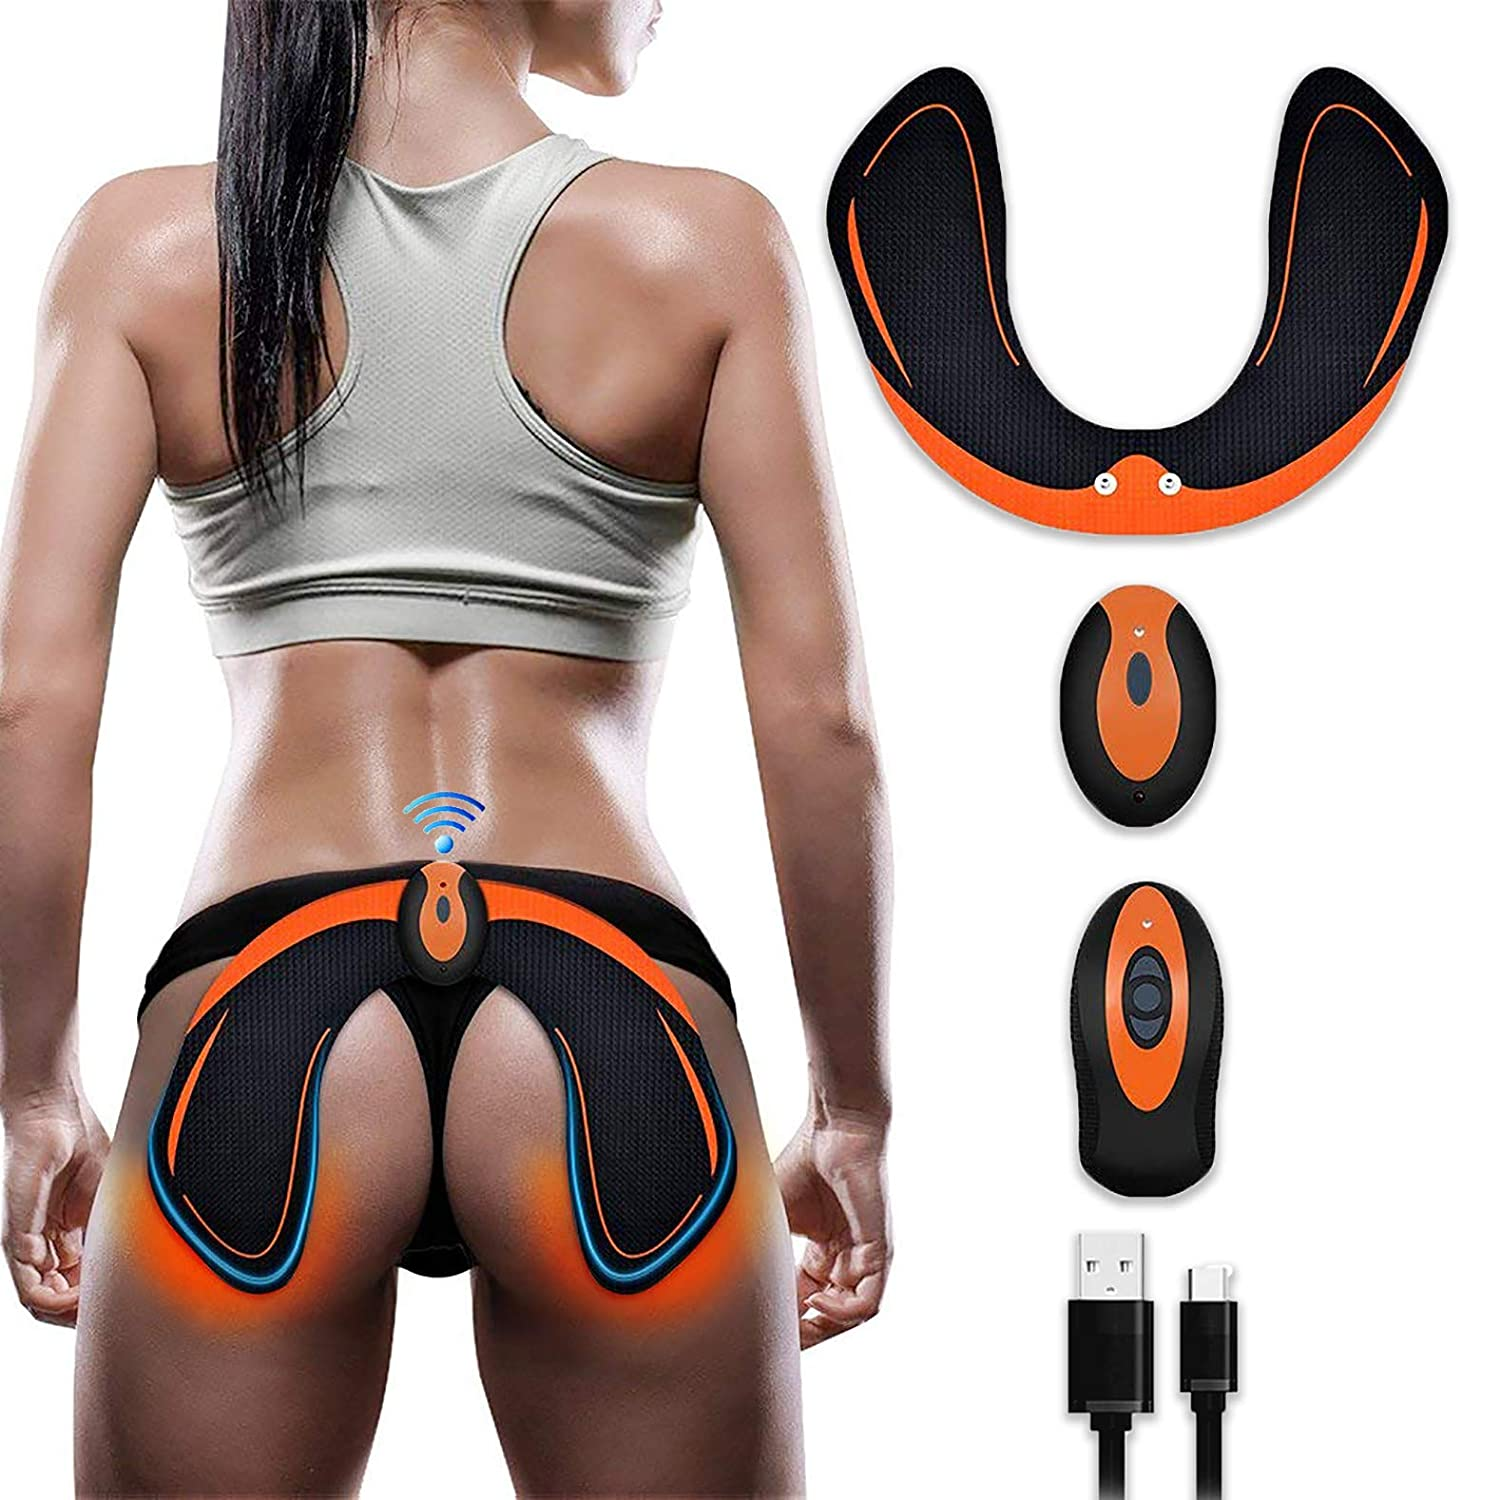 BLUE LOVE ABS Stimulator EMS Hip Trainer Butt Toner with Intelligence System,Helps to Lift,Shape and Firm,Body Massager for Women Fitness